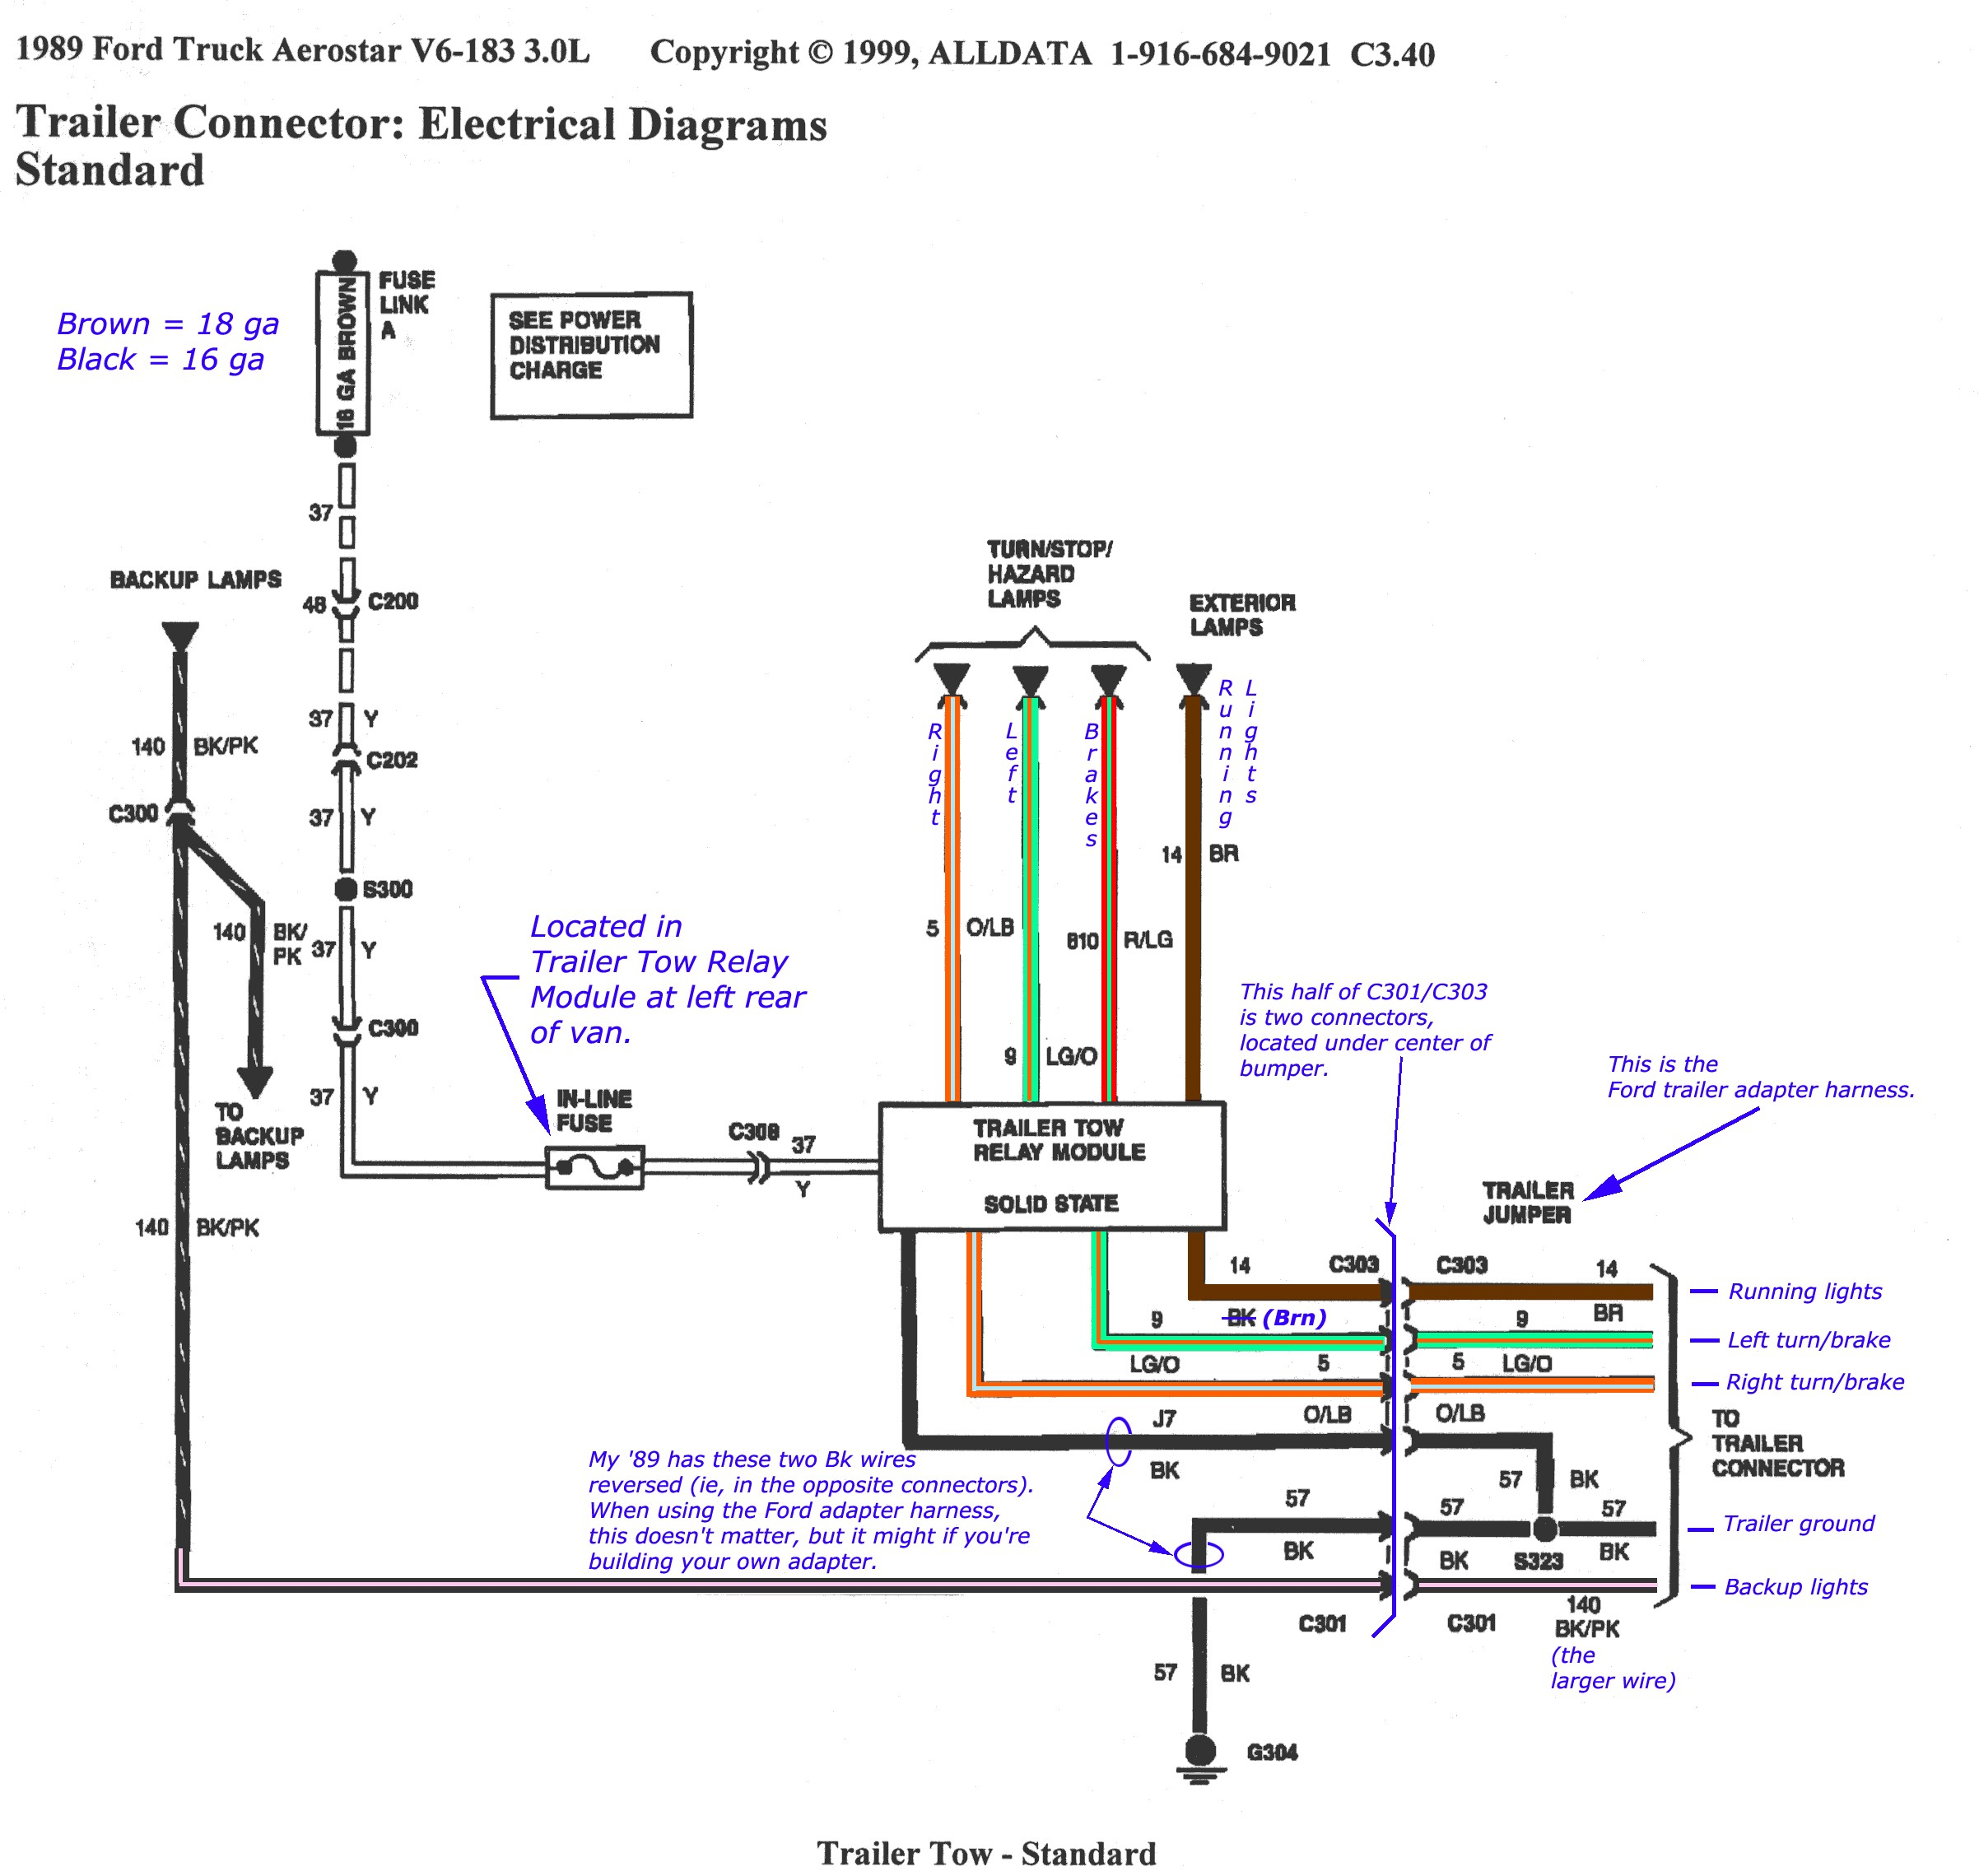 2006 Ford F250 Trailer Wiring Diagram | Wiring Diagram - 1993 Ford F250 Trailer Wiring Diagram